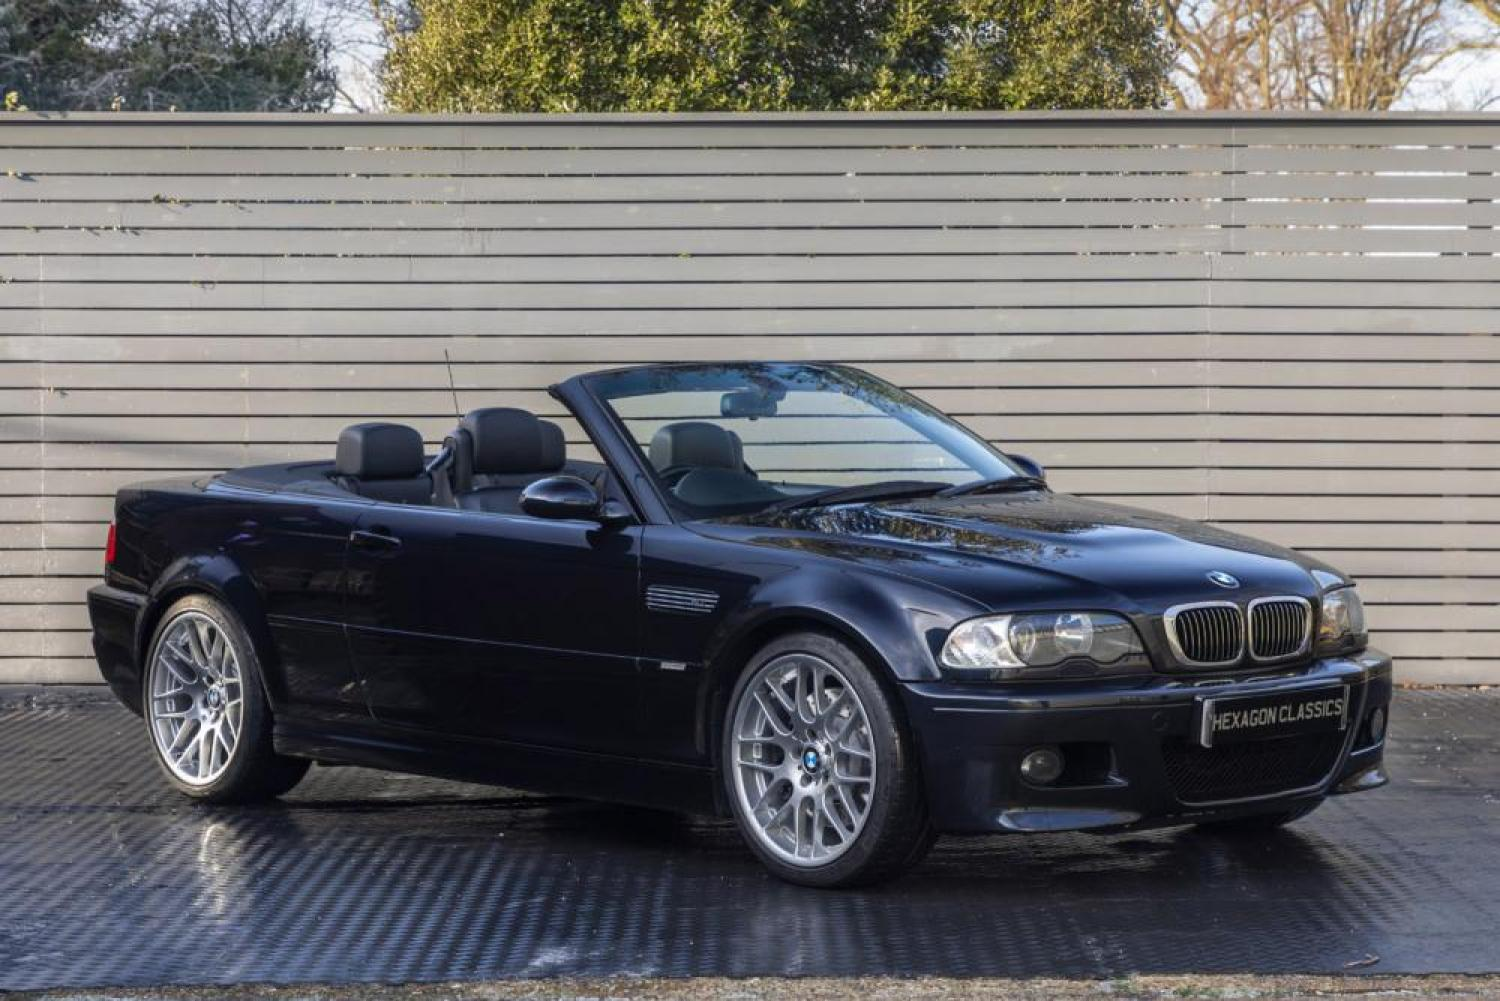 Bmw M3 Convertible Cs Upgrades E46 Smg 2006 Hexagon Classic And Modern Cars